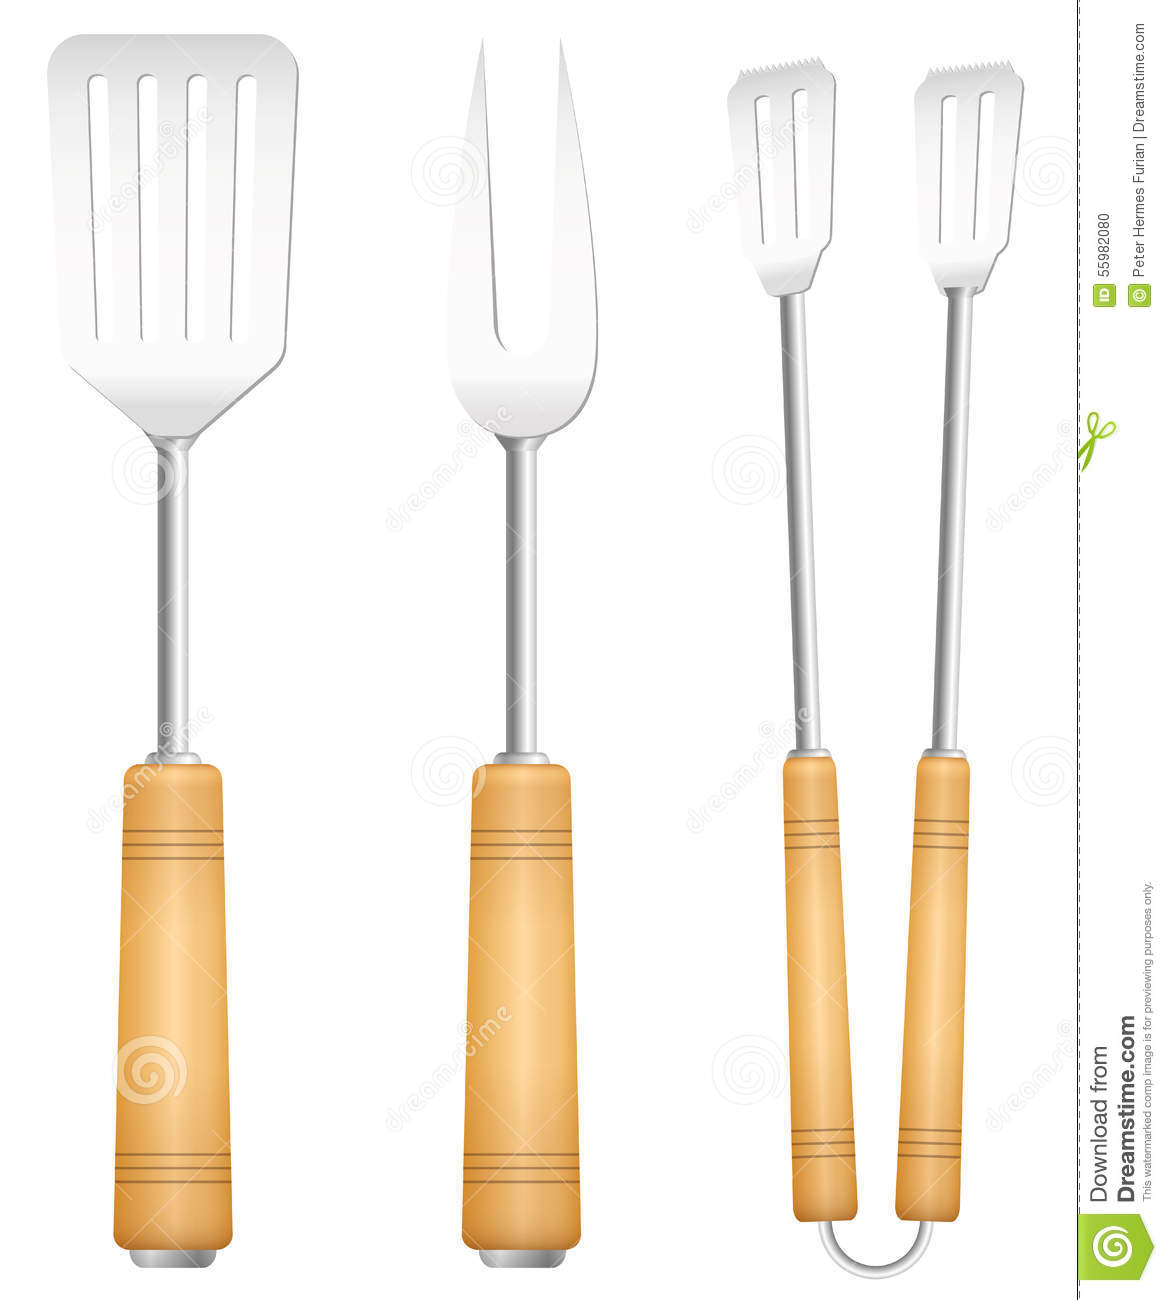 bbq tools utensils barbecue cutlery stock vector image